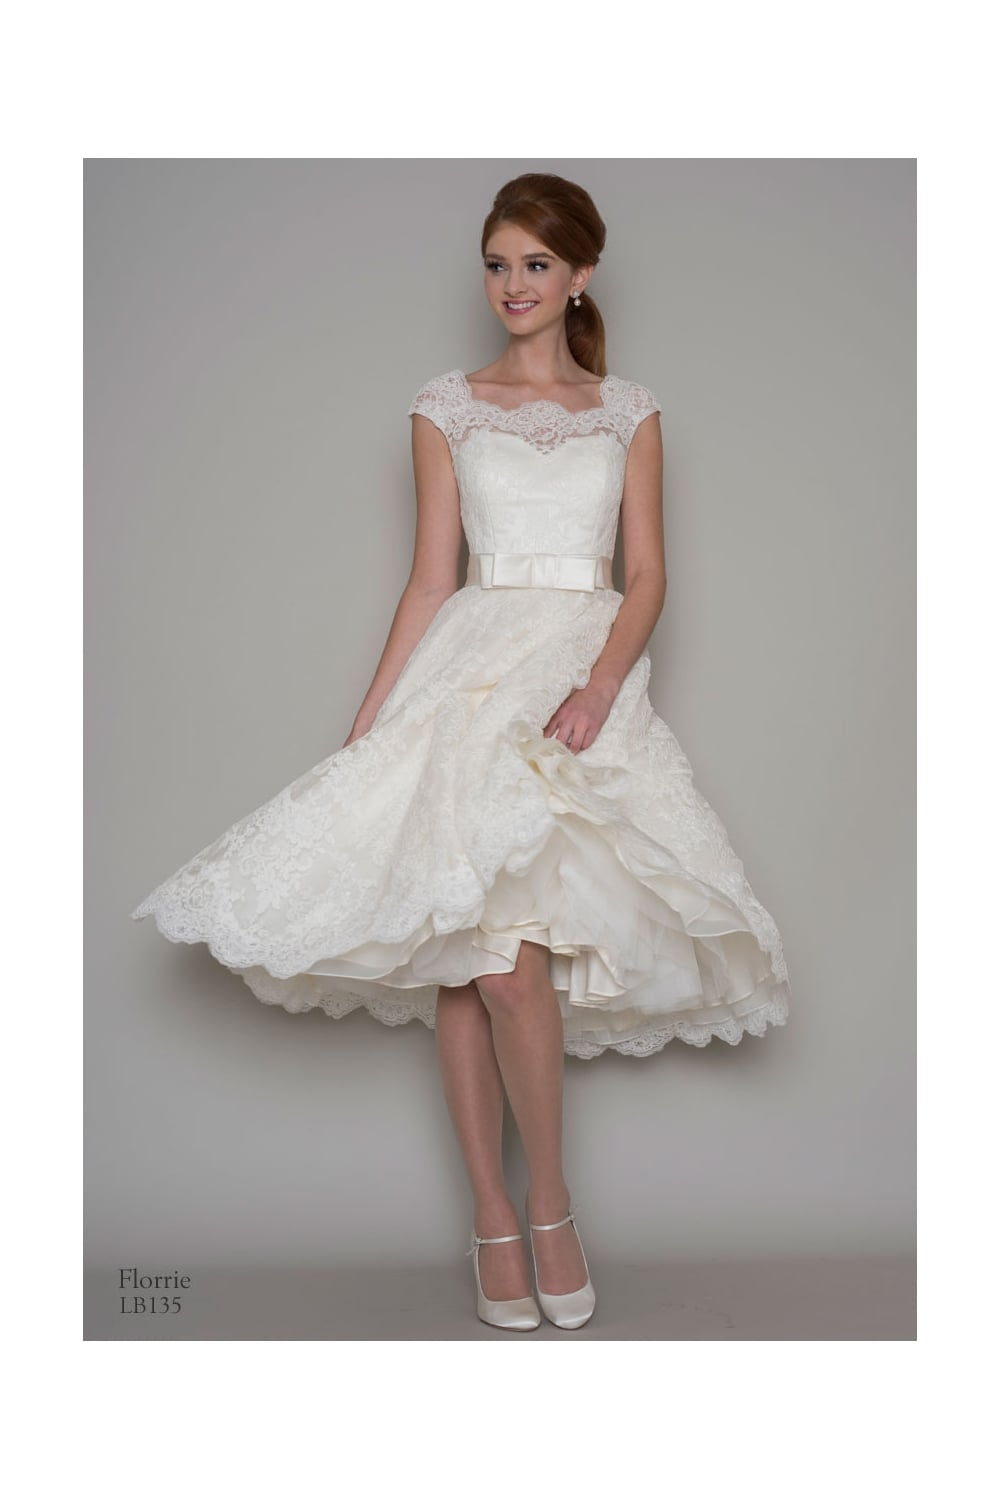 Loulou Bridal Florrie Lace Tea Length Short Wedding Dress With Cap Sleeve